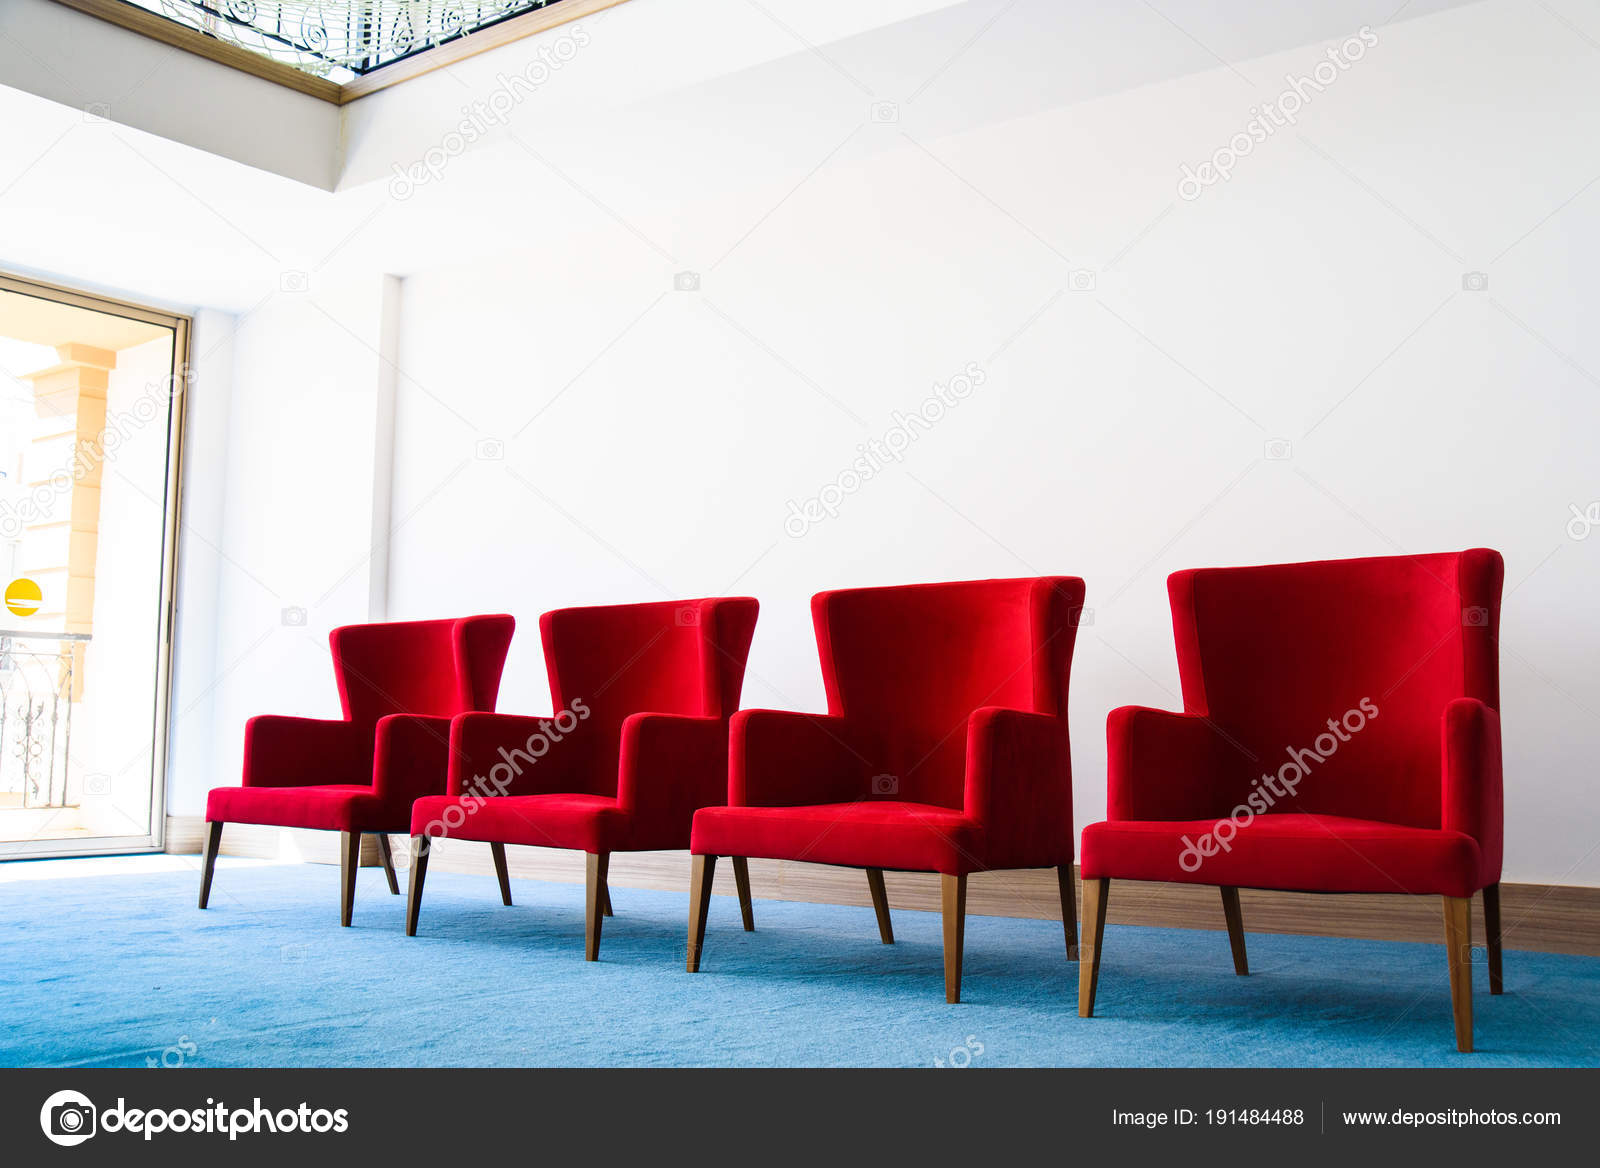 Miraculous Red Chair In White Interior Stock Photo C Pproman 191484488 Pabps2019 Chair Design Images Pabps2019Com